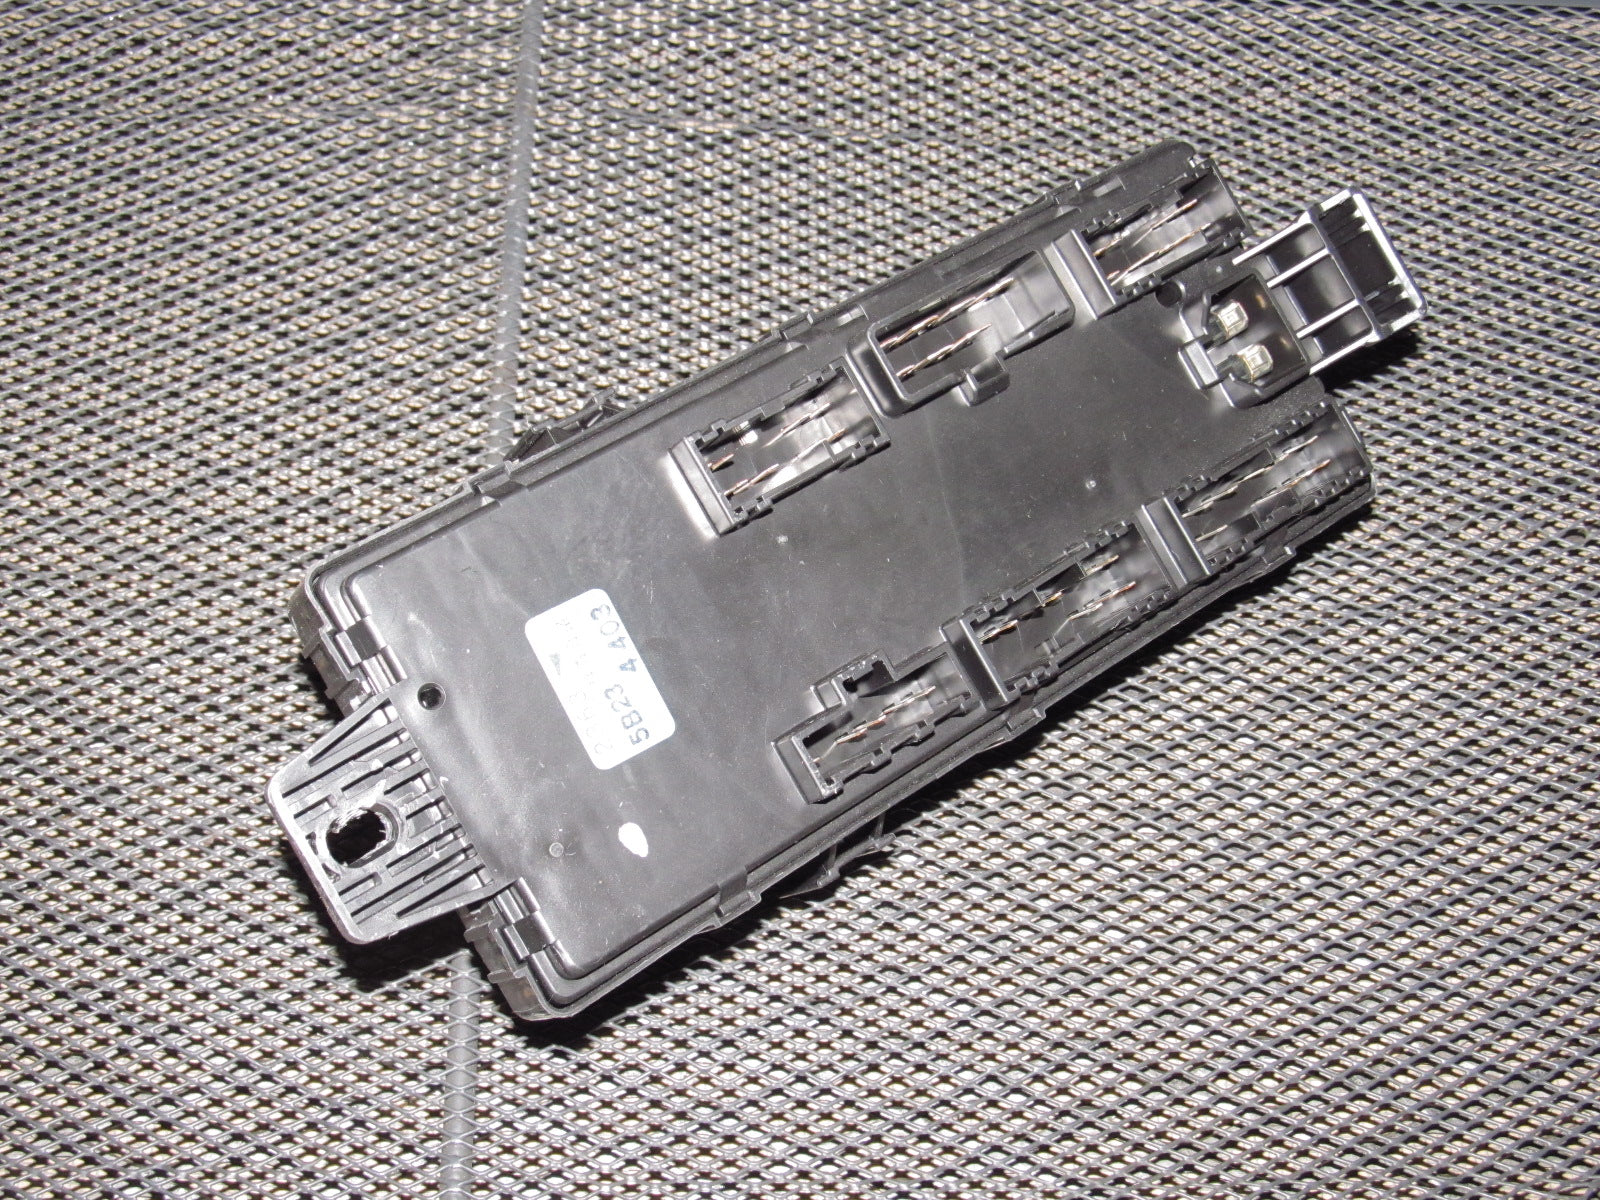 1990 Mitsubishi 3000gt Fuse Box Wiring Diagrams Data Base Audi A3 Interior 94 Electrical Rh Wiringforall Today On Nissan Almera For 95 96 97 Oem